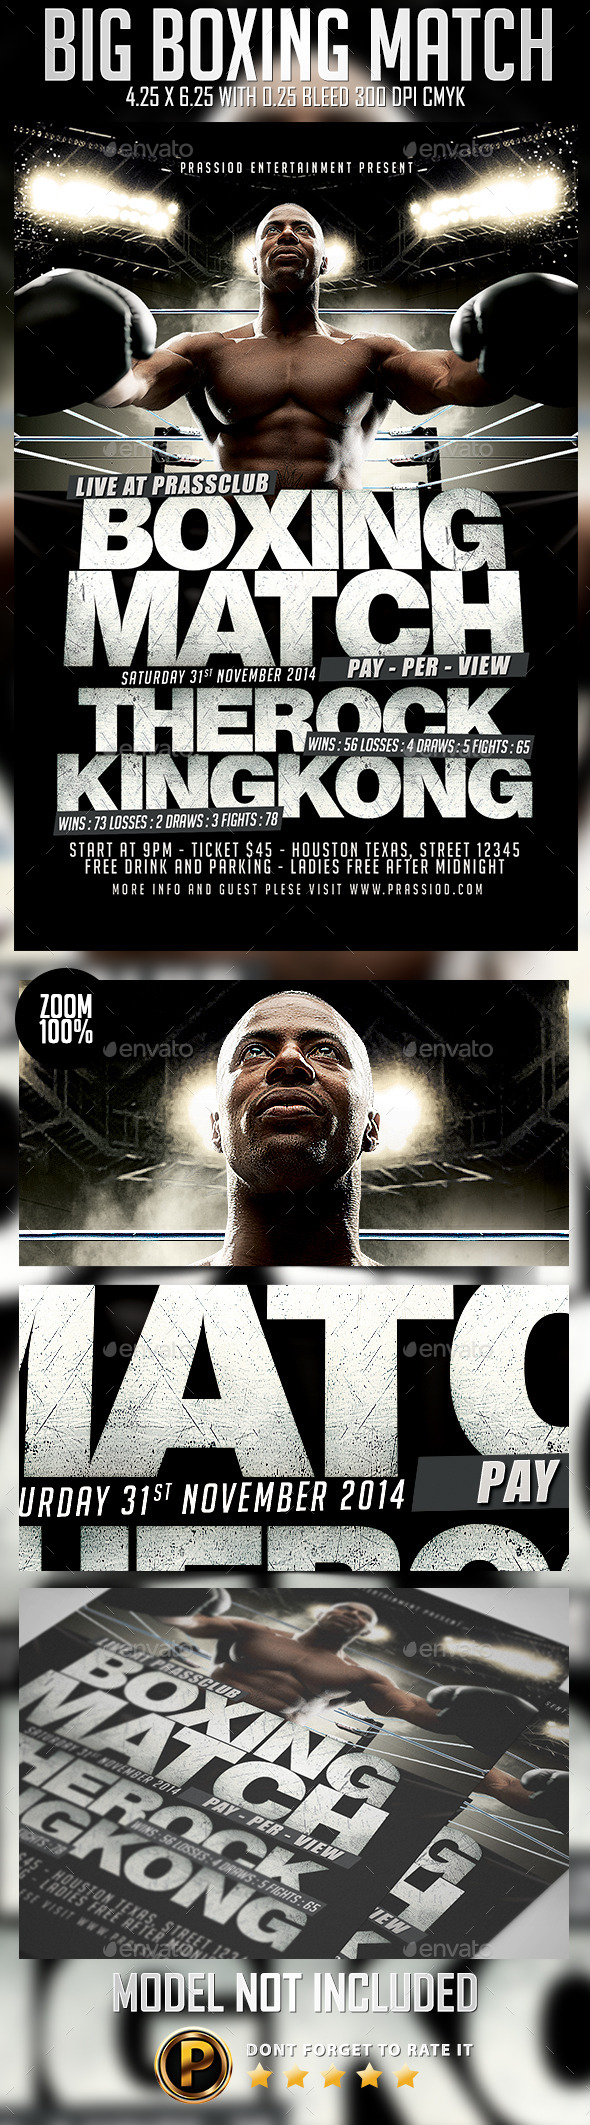 Big Boxing Match Flyer Template - Sports Events